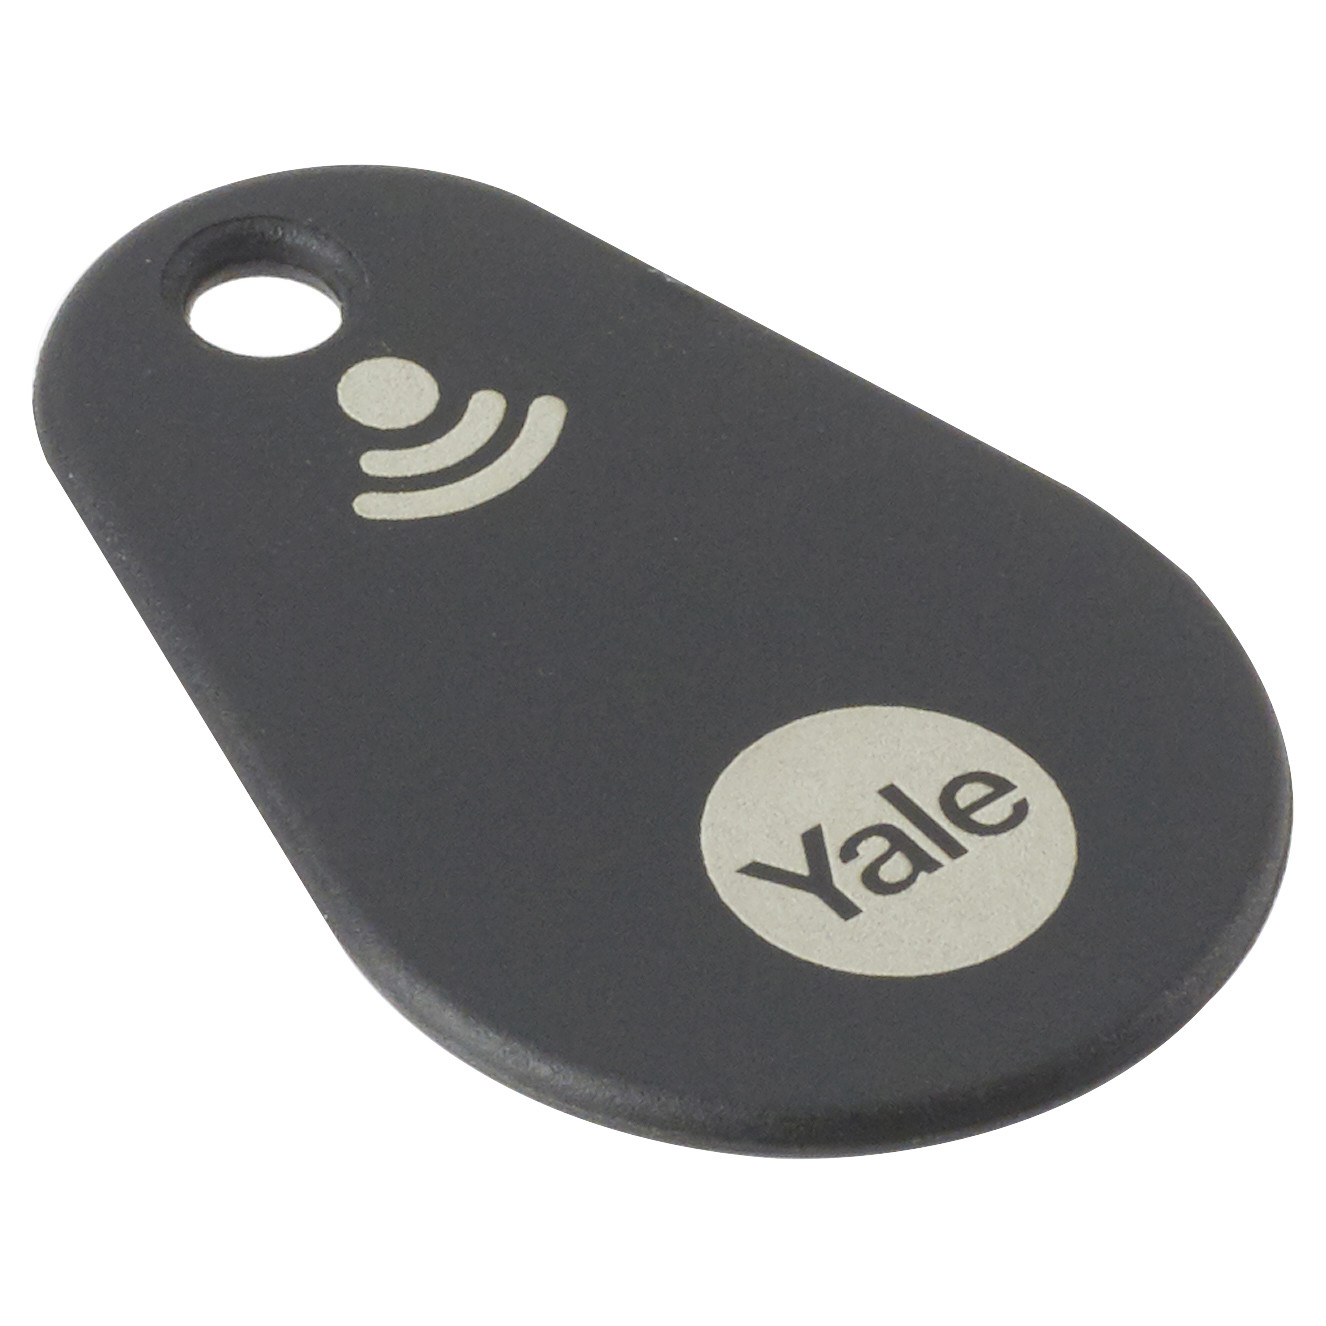 Yale Intruder Alarm Contactless Tags - Pack of 2 (AC-RFIDTAG))